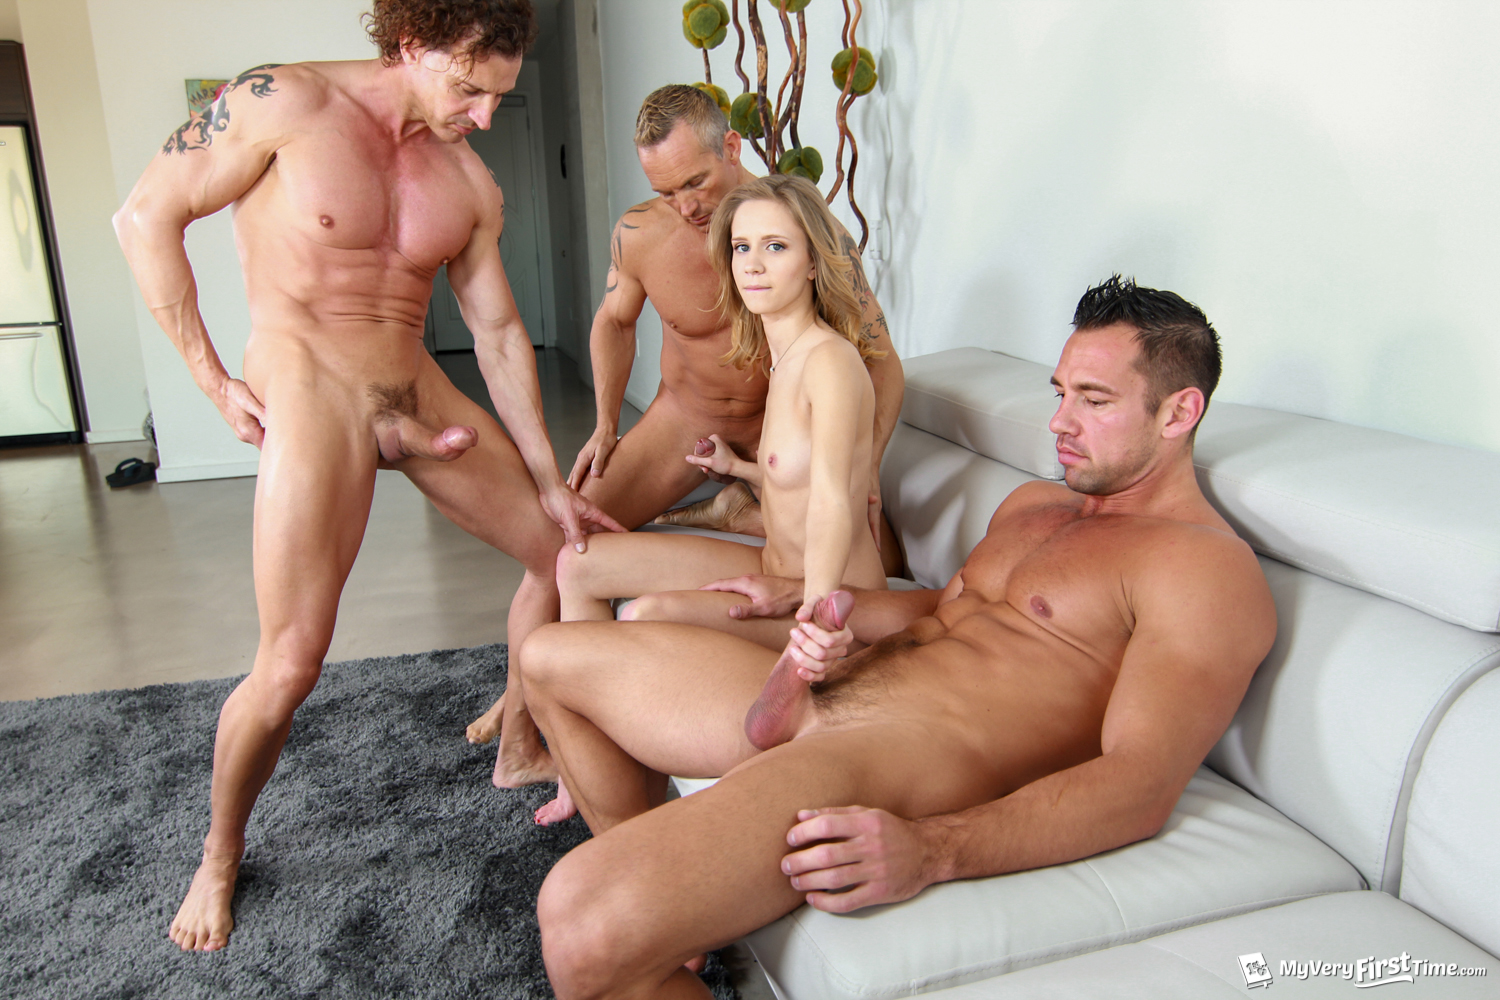 Brutal vaginal fisting gang bang-3559